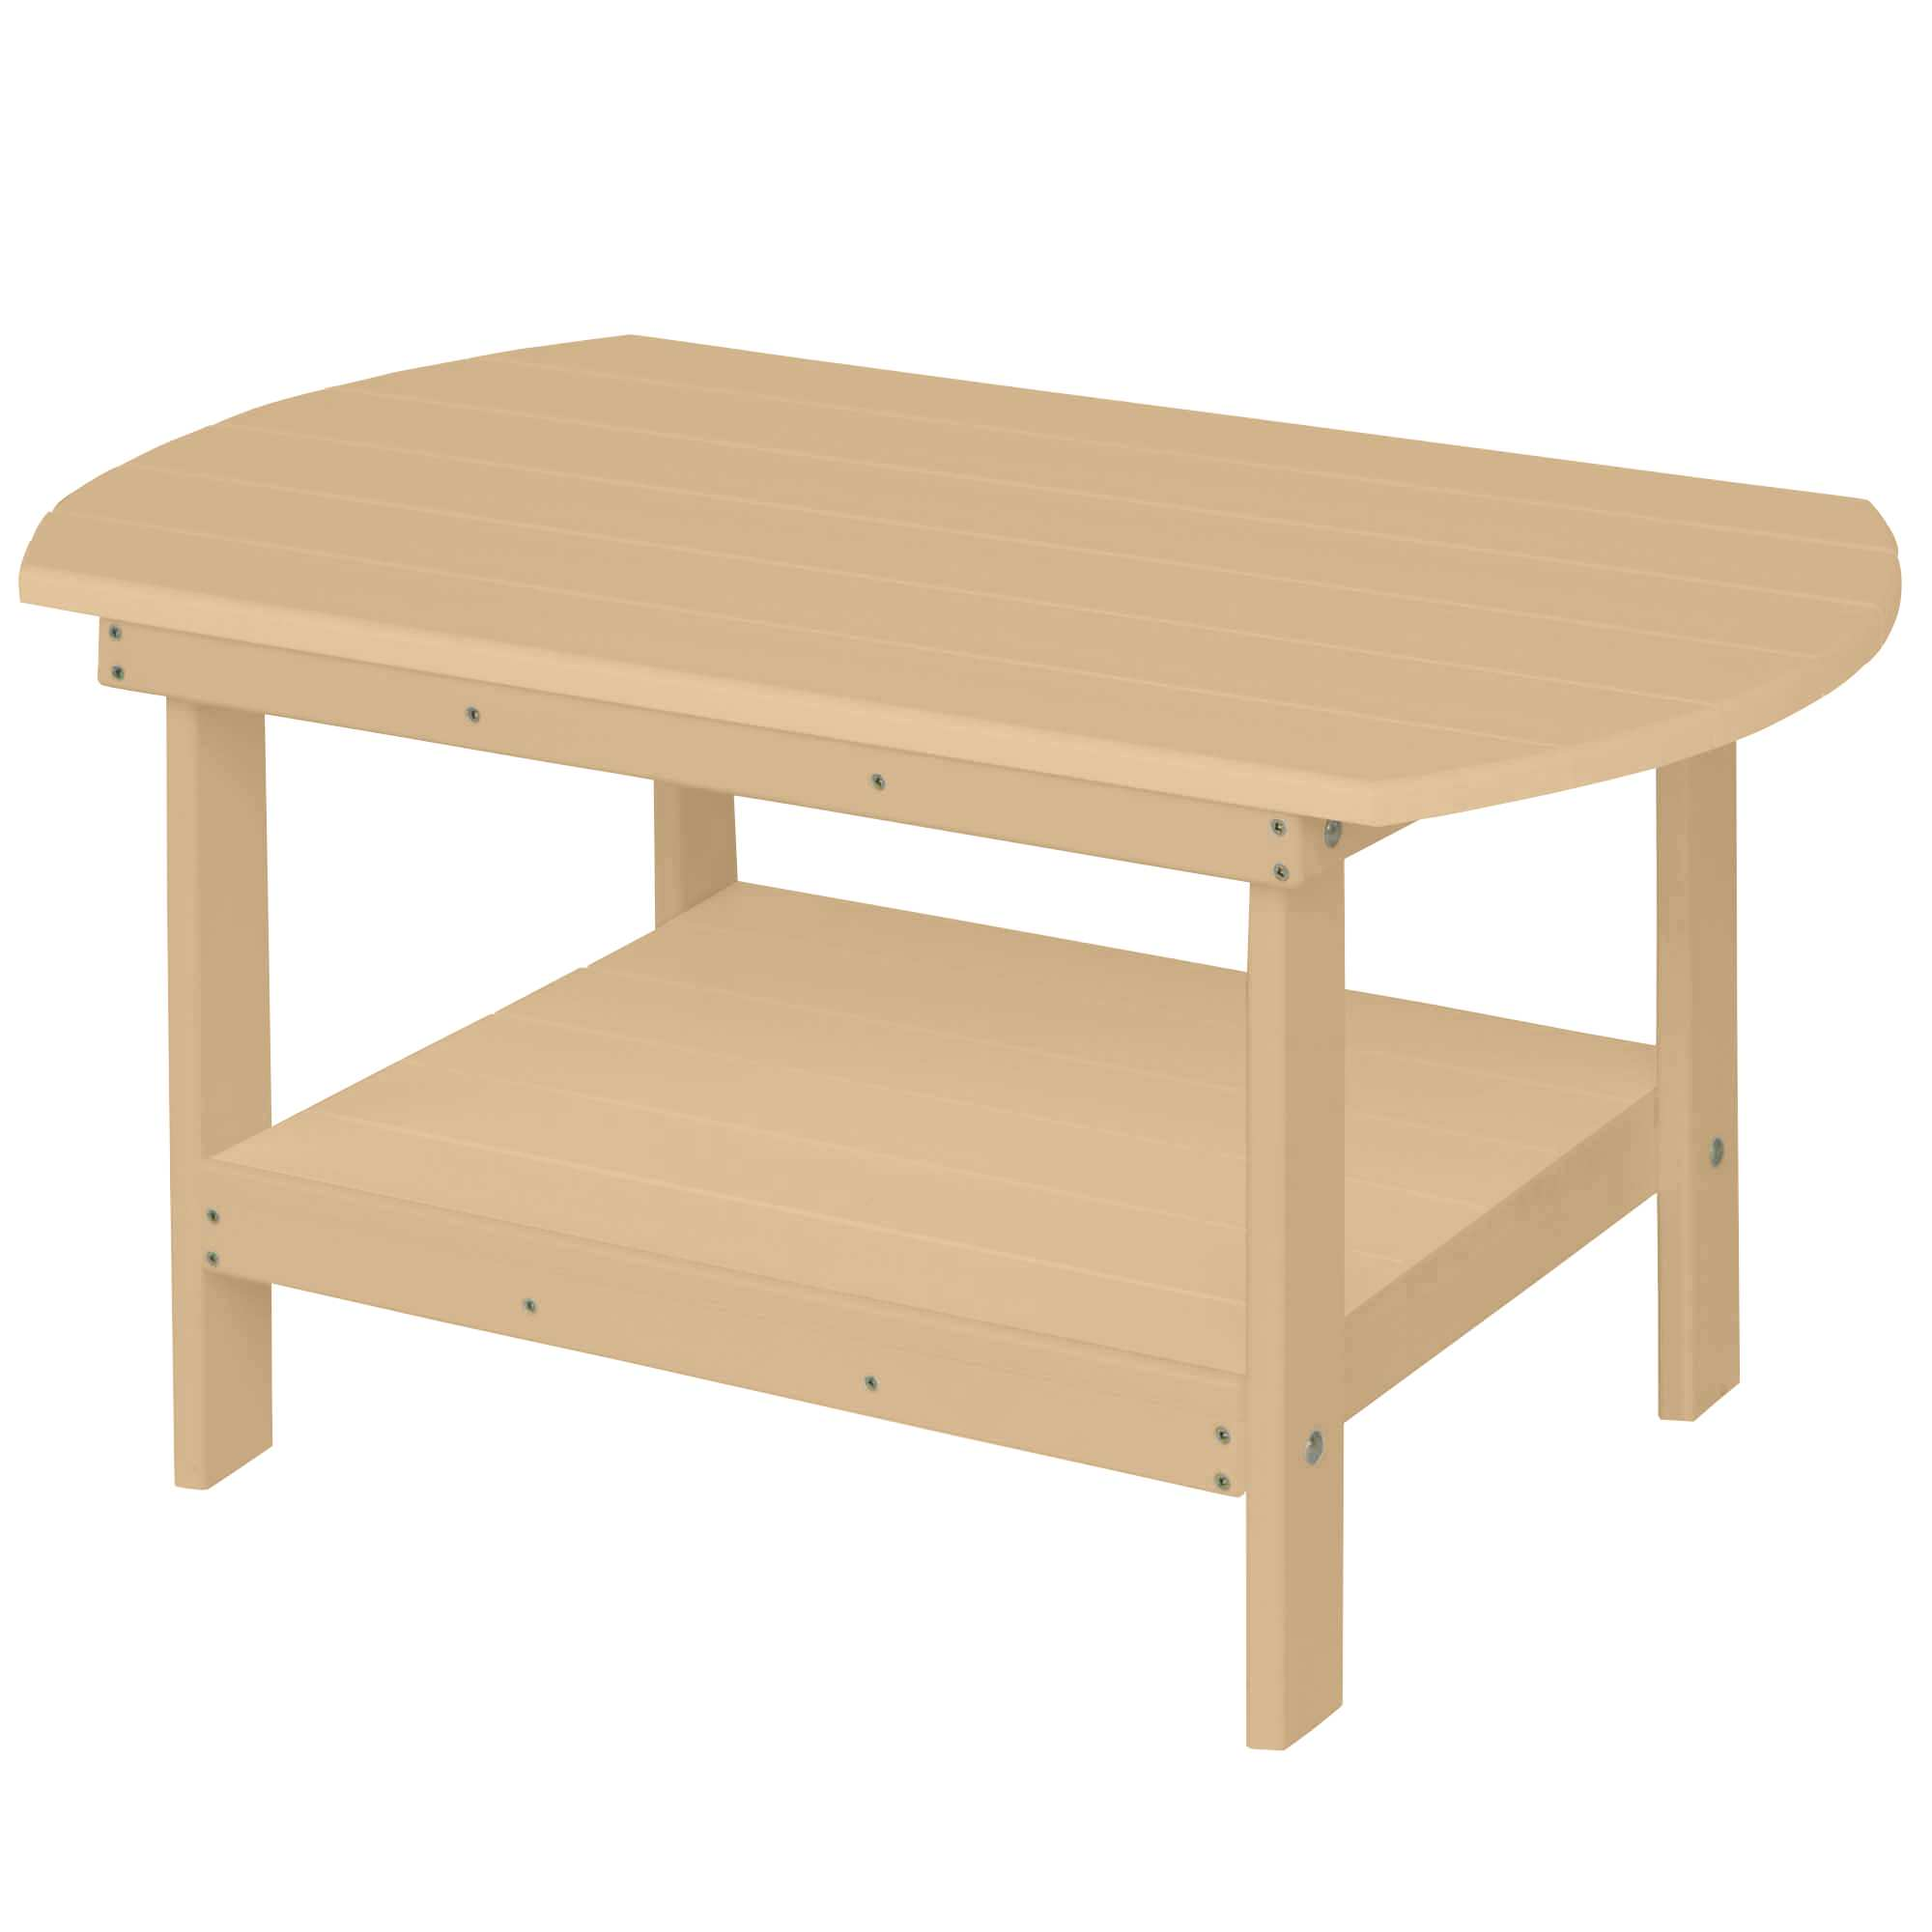 Oblong Coffee Table Weatherwood Discontinued